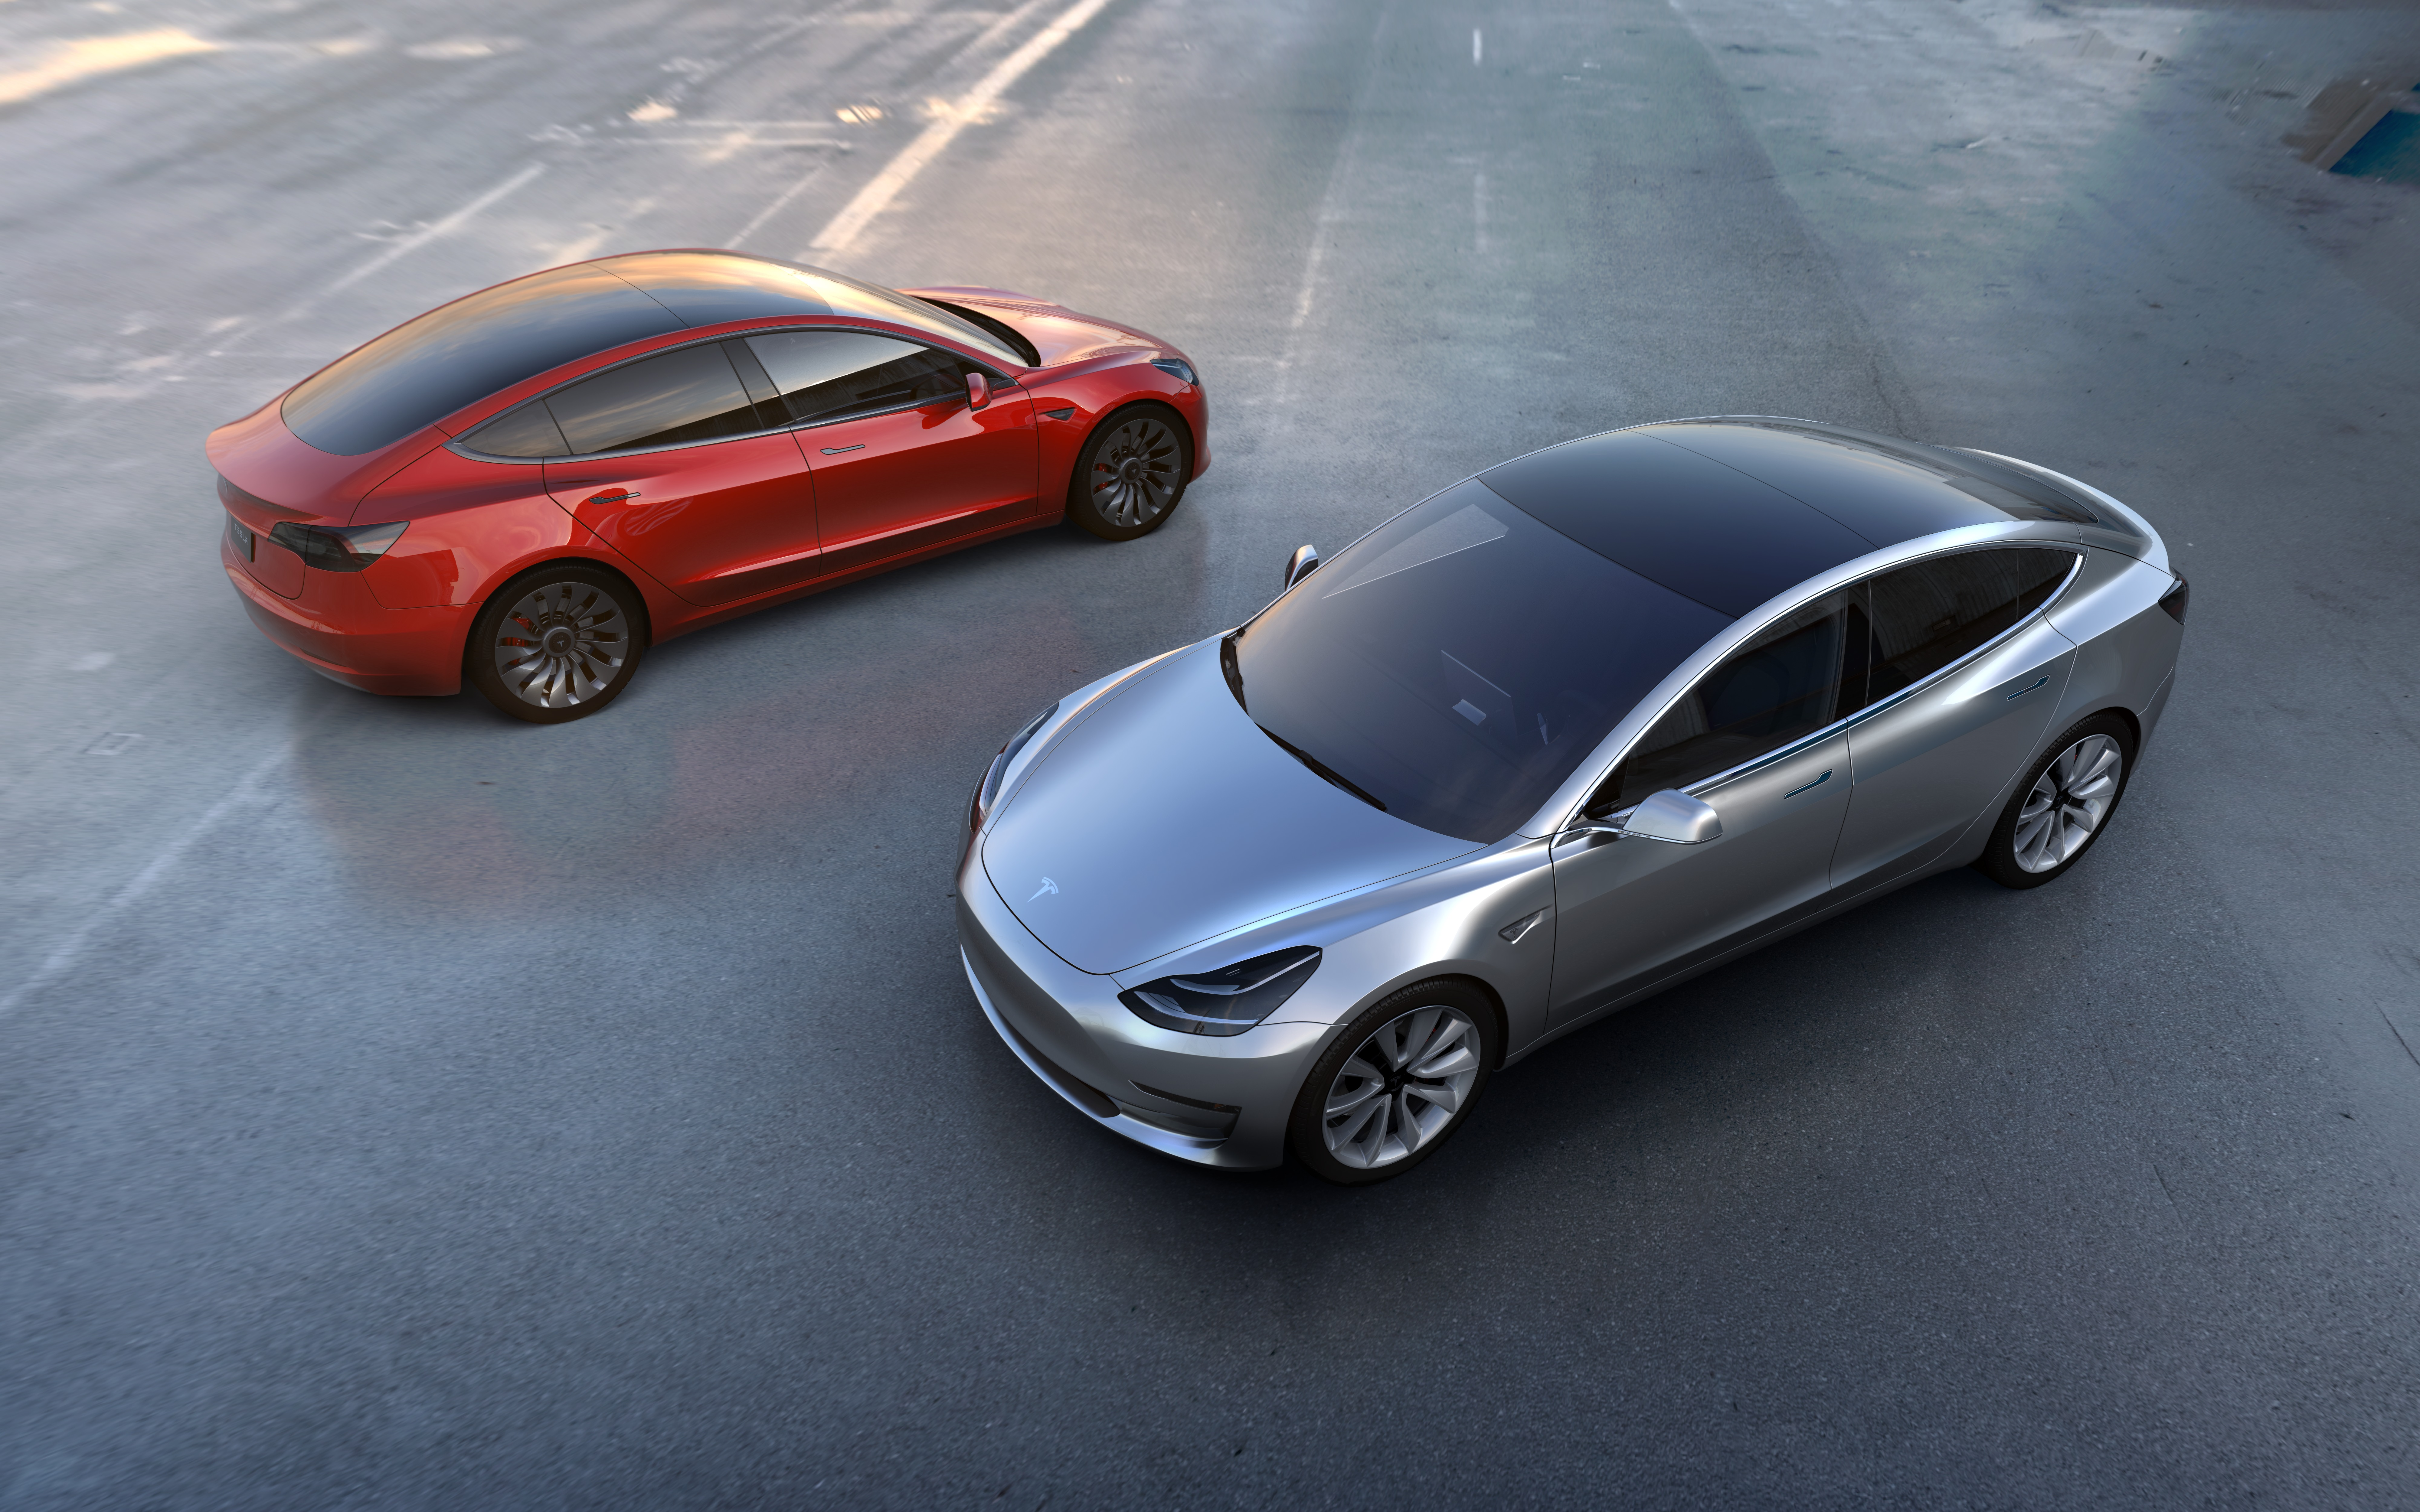 The $35,000 Tesla Model 3 in pictures - The Verge